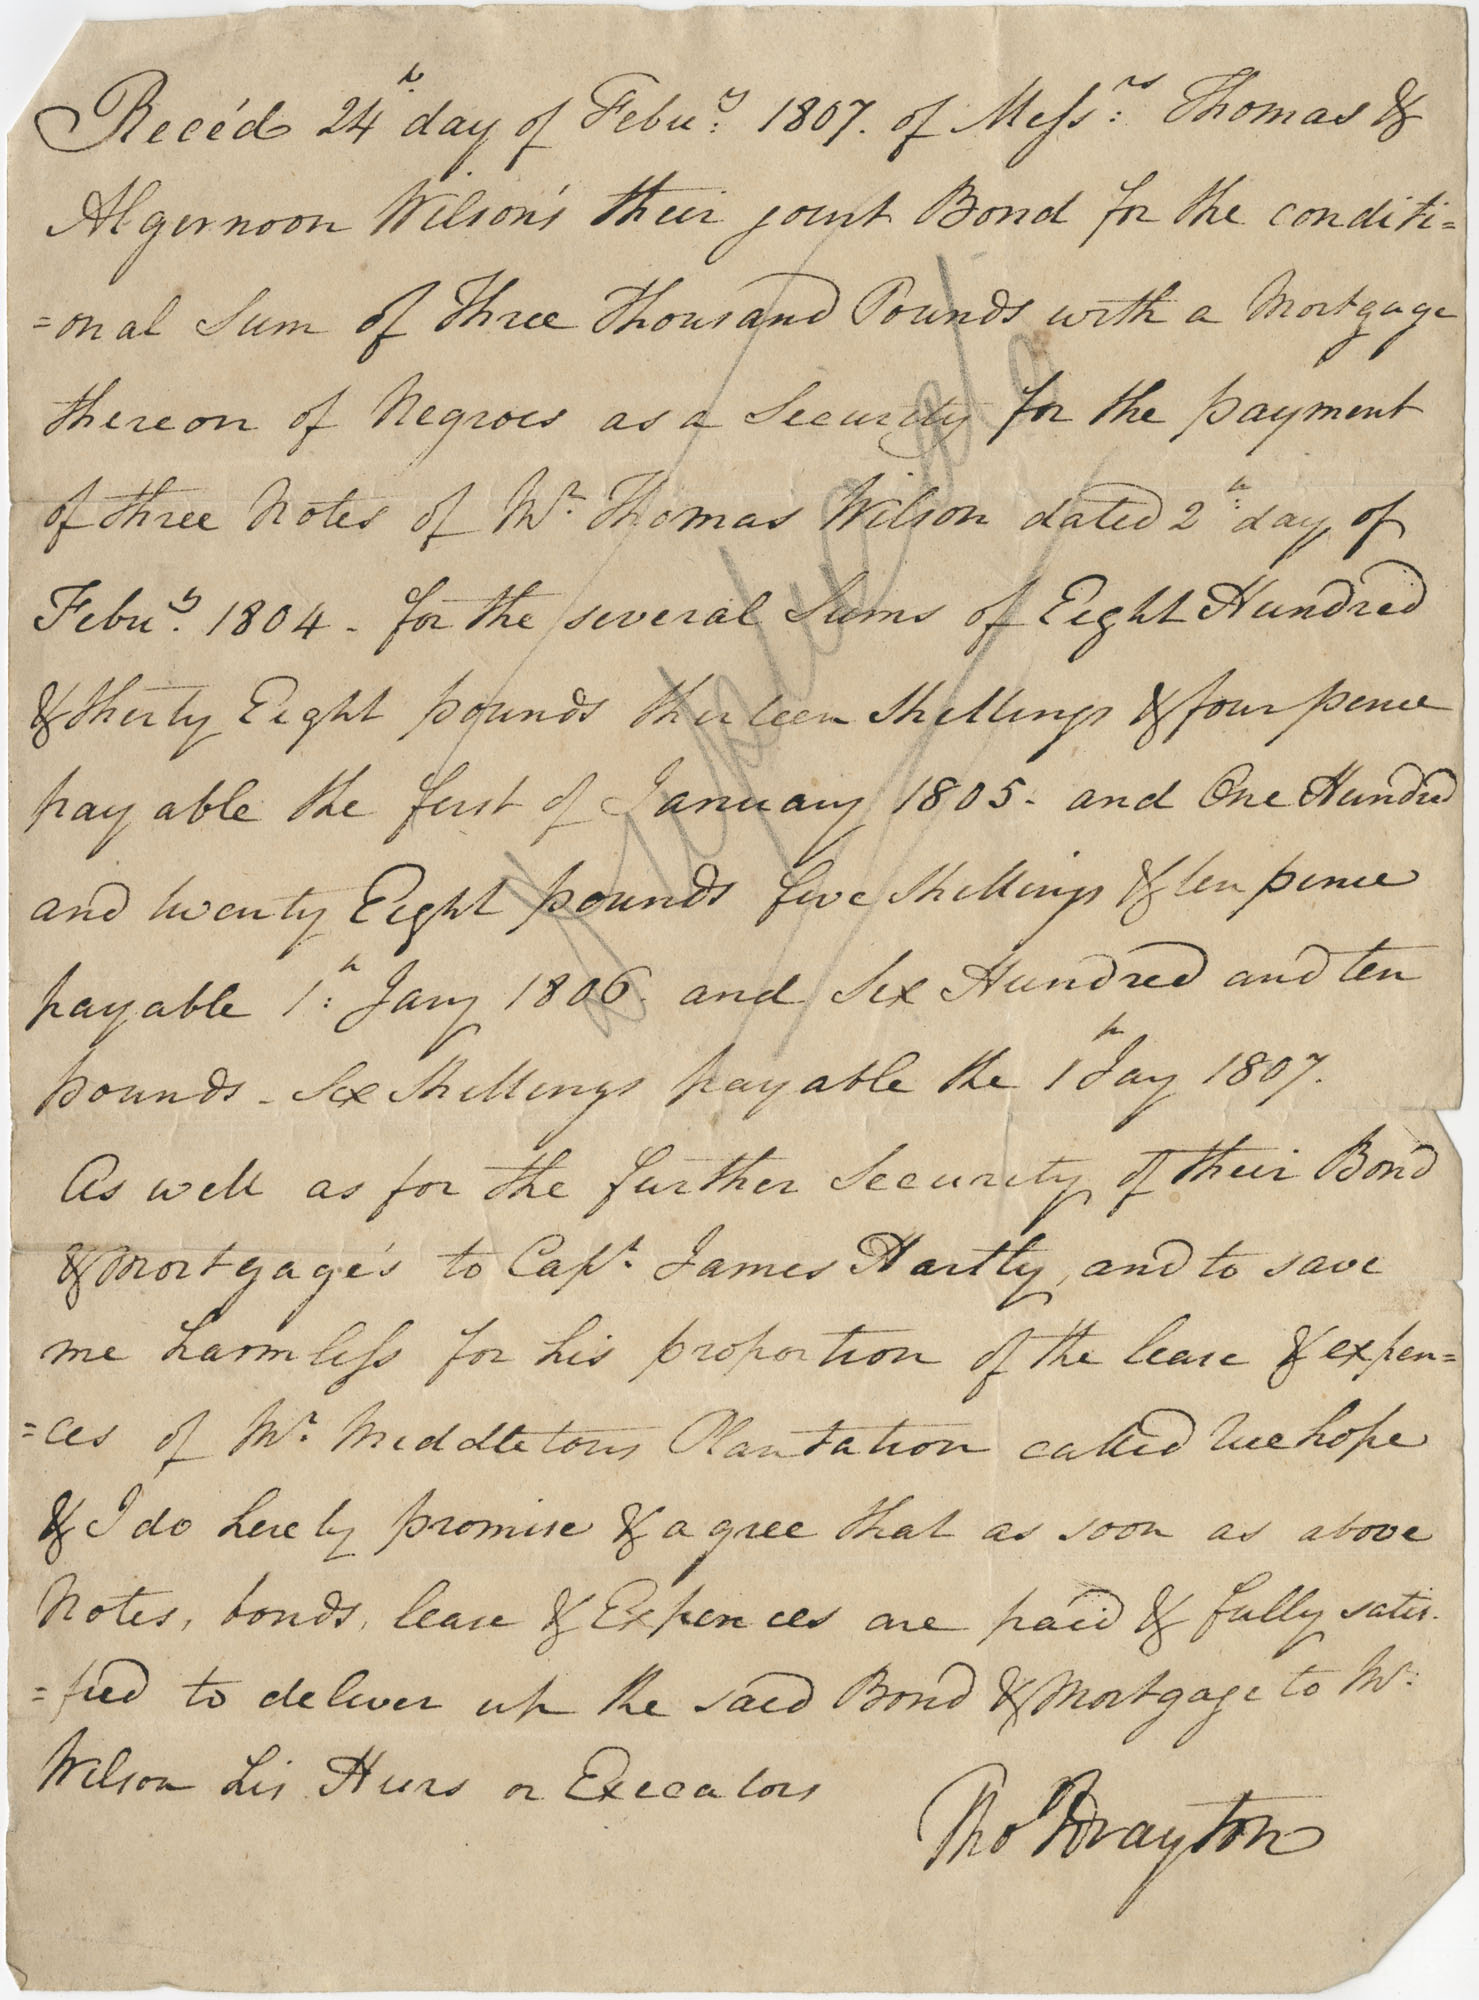 Promissory note from Thomas Drayton to return a security deposit to Algernon and Thomas Wilson once debts had been paid, February 24, 1807